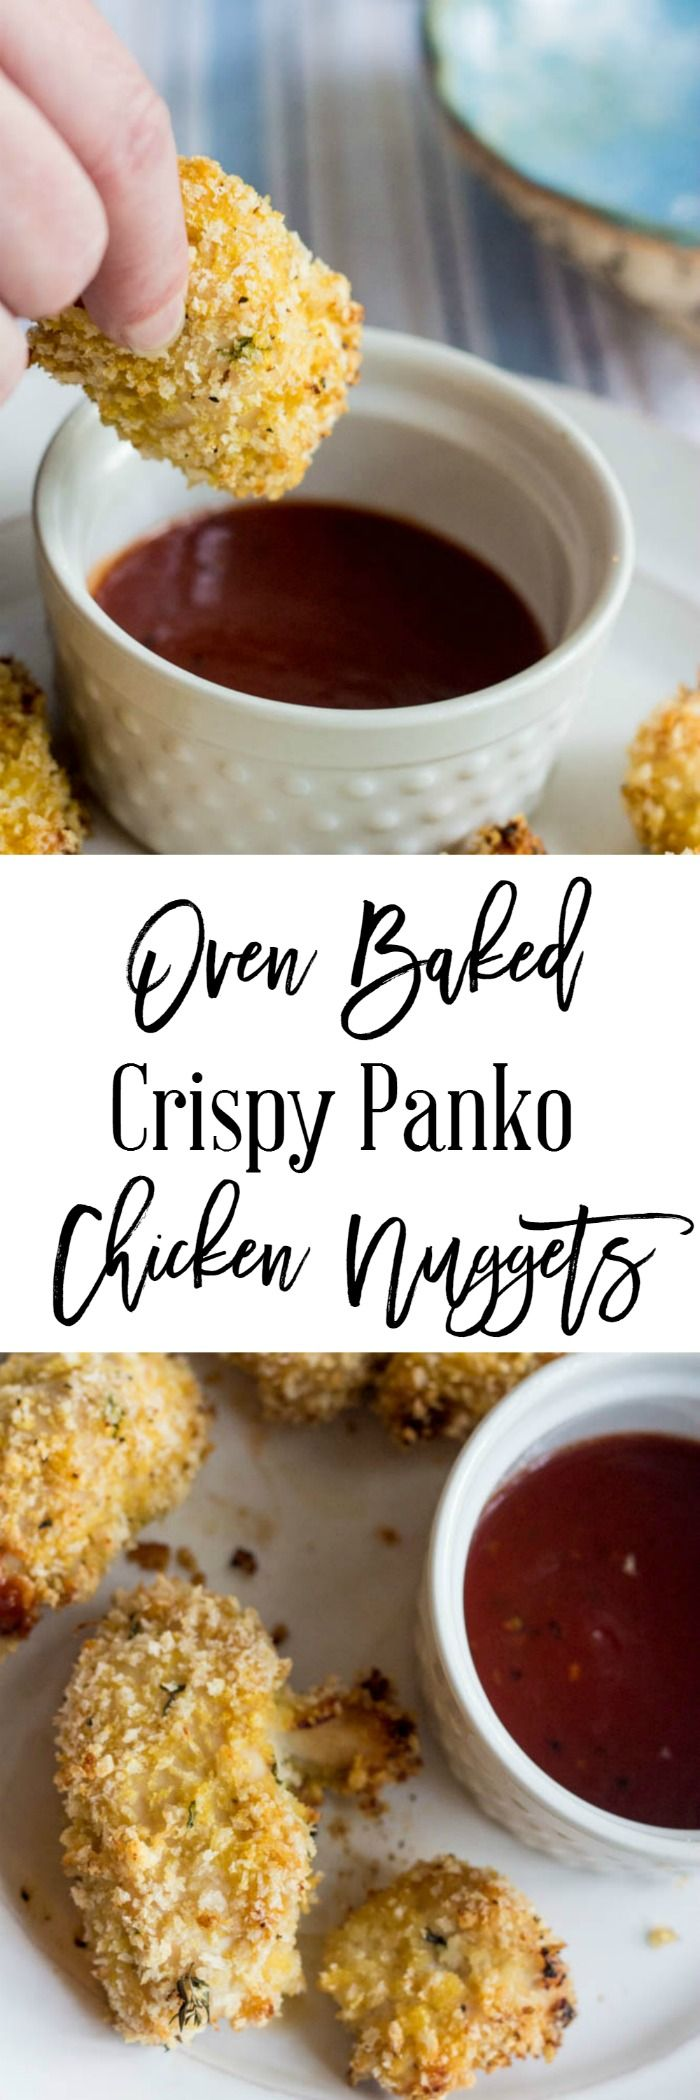 If you crave chicken fingers, try these oven baked crispy panko chicken nuggets recipe. It's so easy to make and taste like they were fried...but they aren't!